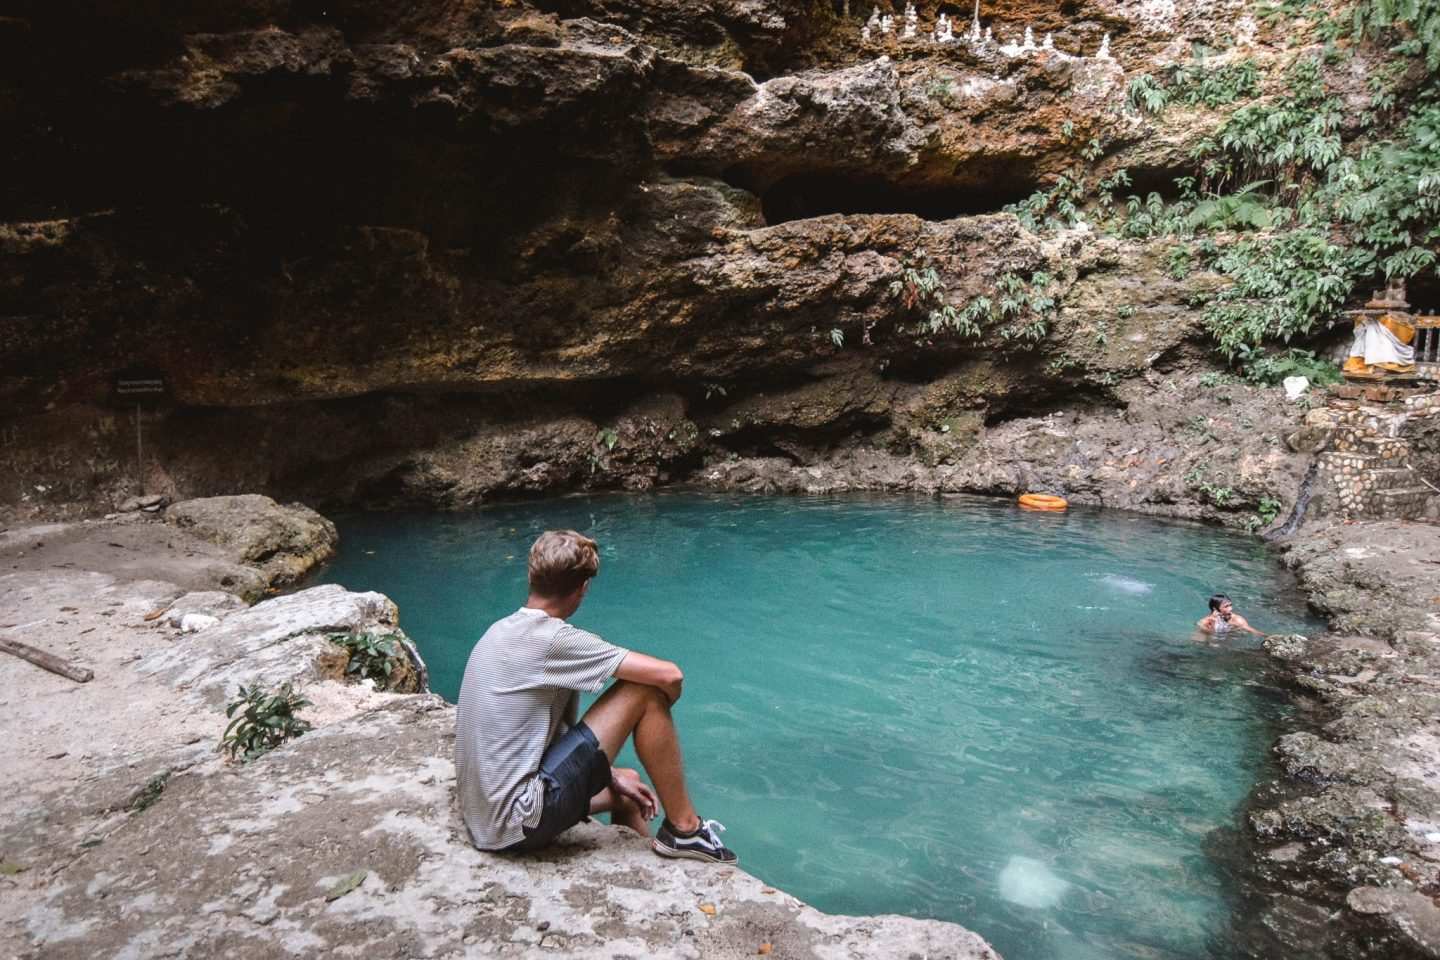 Wanderers & Warriors - Charlie & Lauren UK Travel Couple - Tembeling Natural Pool - Nusa Penida Bali - Tembeling Nusa Penida - Tembeling Natural Pool Nusa Penida - Tembelng Beach And Forest - Things To Do In Nusa Penida - Tembeling Beach Nusa Penida